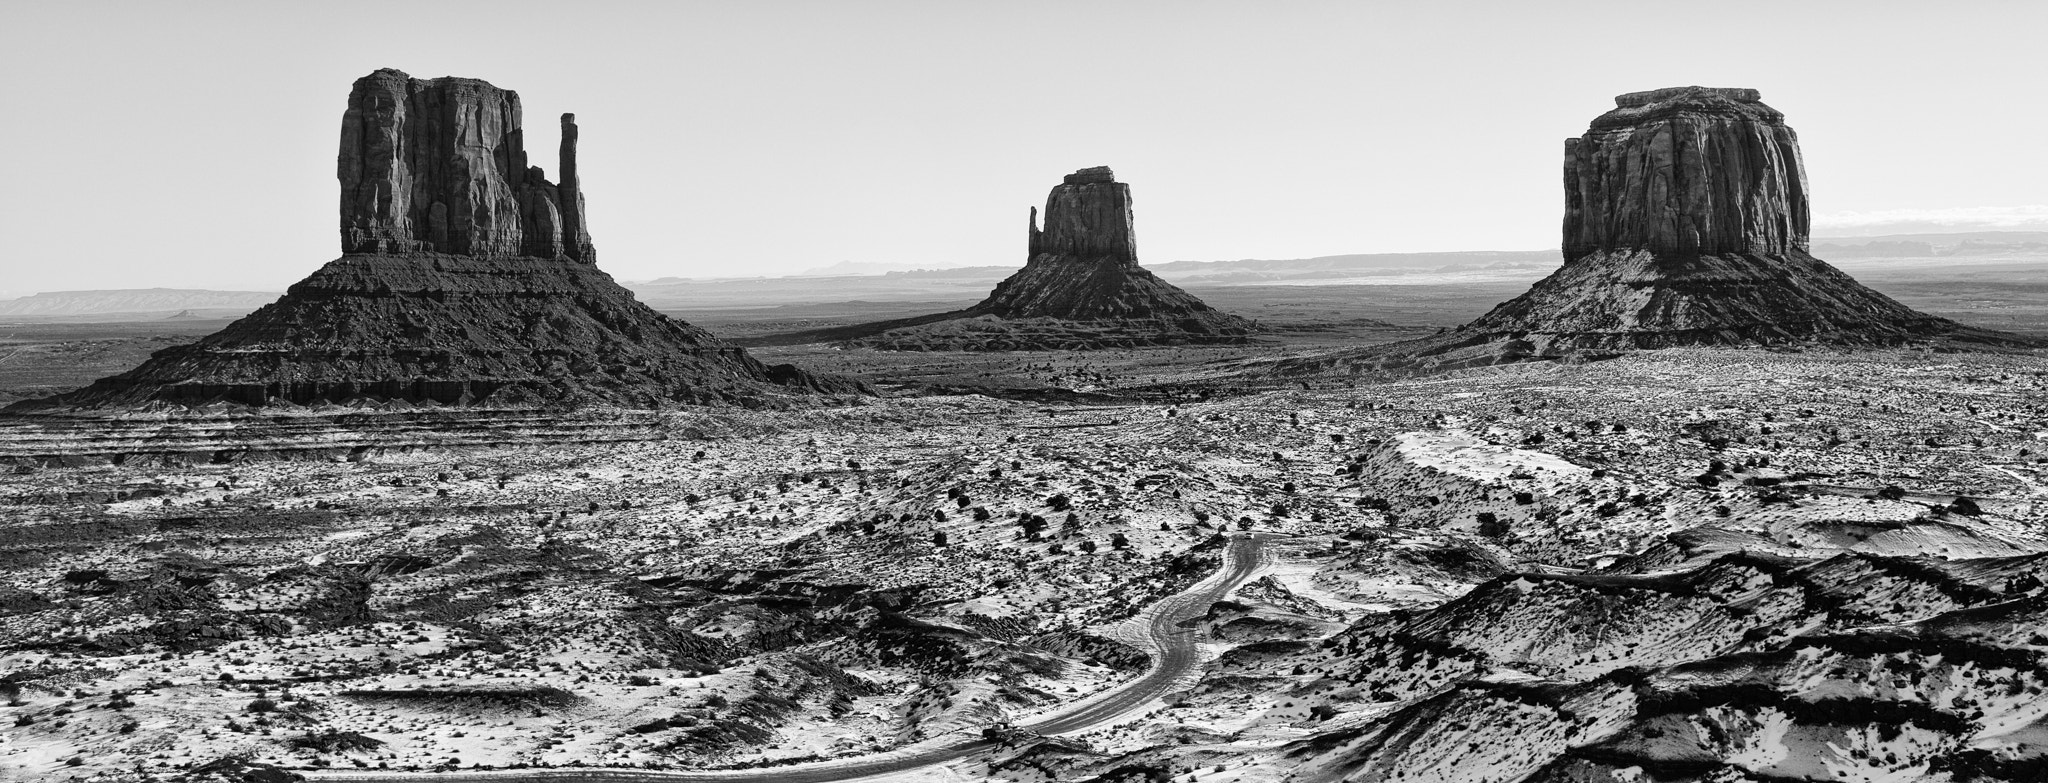 Photograph Monument Valley Navajo Tribal Park by FarzinPhoto  on 500px